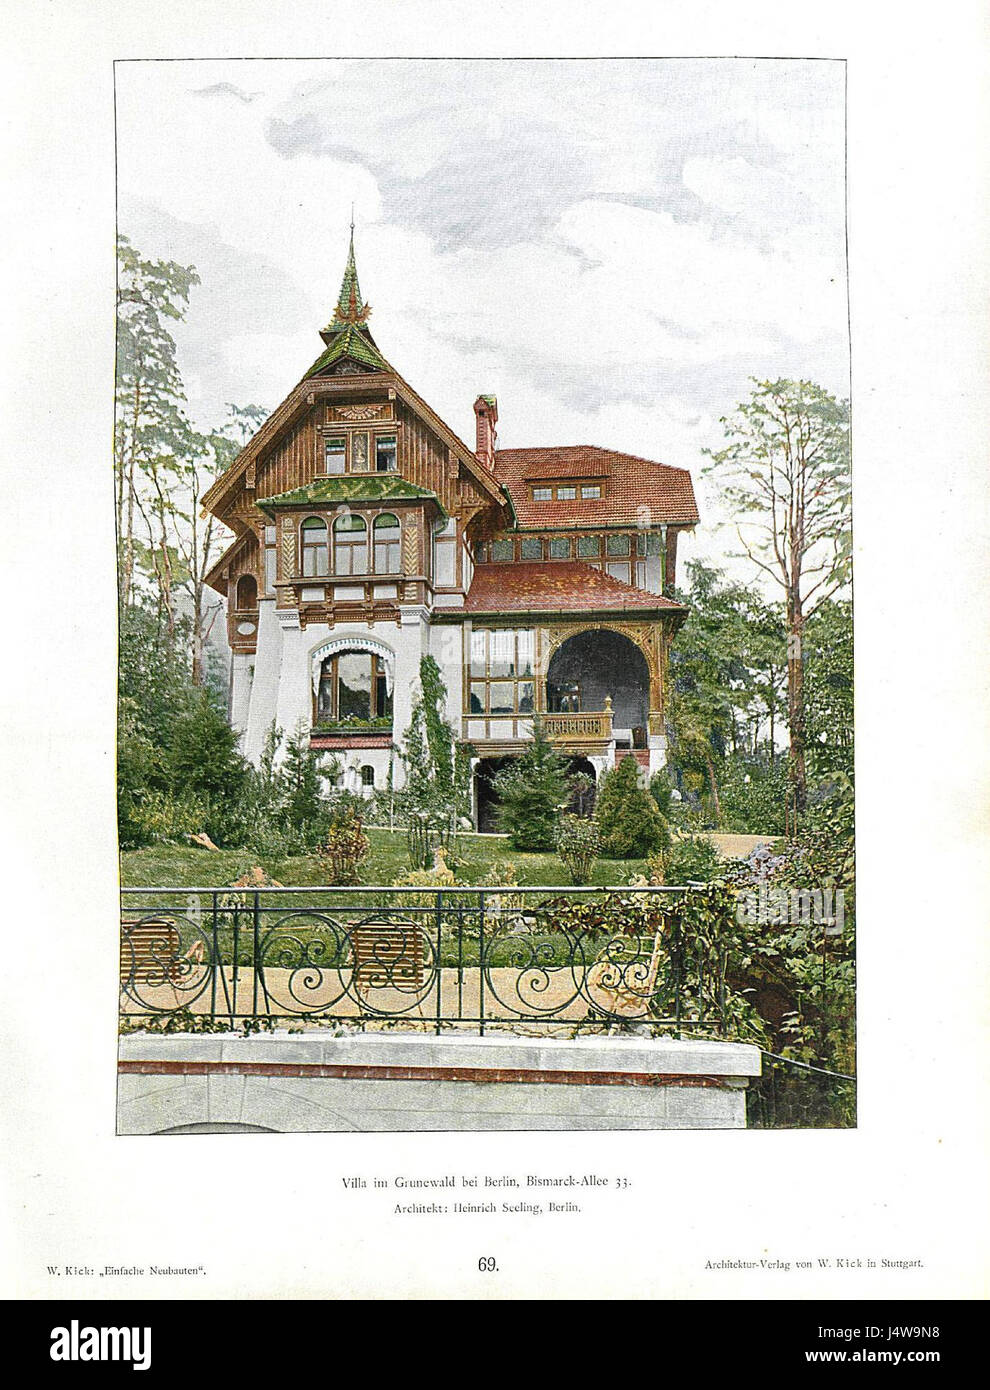 wilhelm kick einfache neubauten stuttgart 1890 villa im grunewald stock photo royalty free. Black Bedroom Furniture Sets. Home Design Ideas